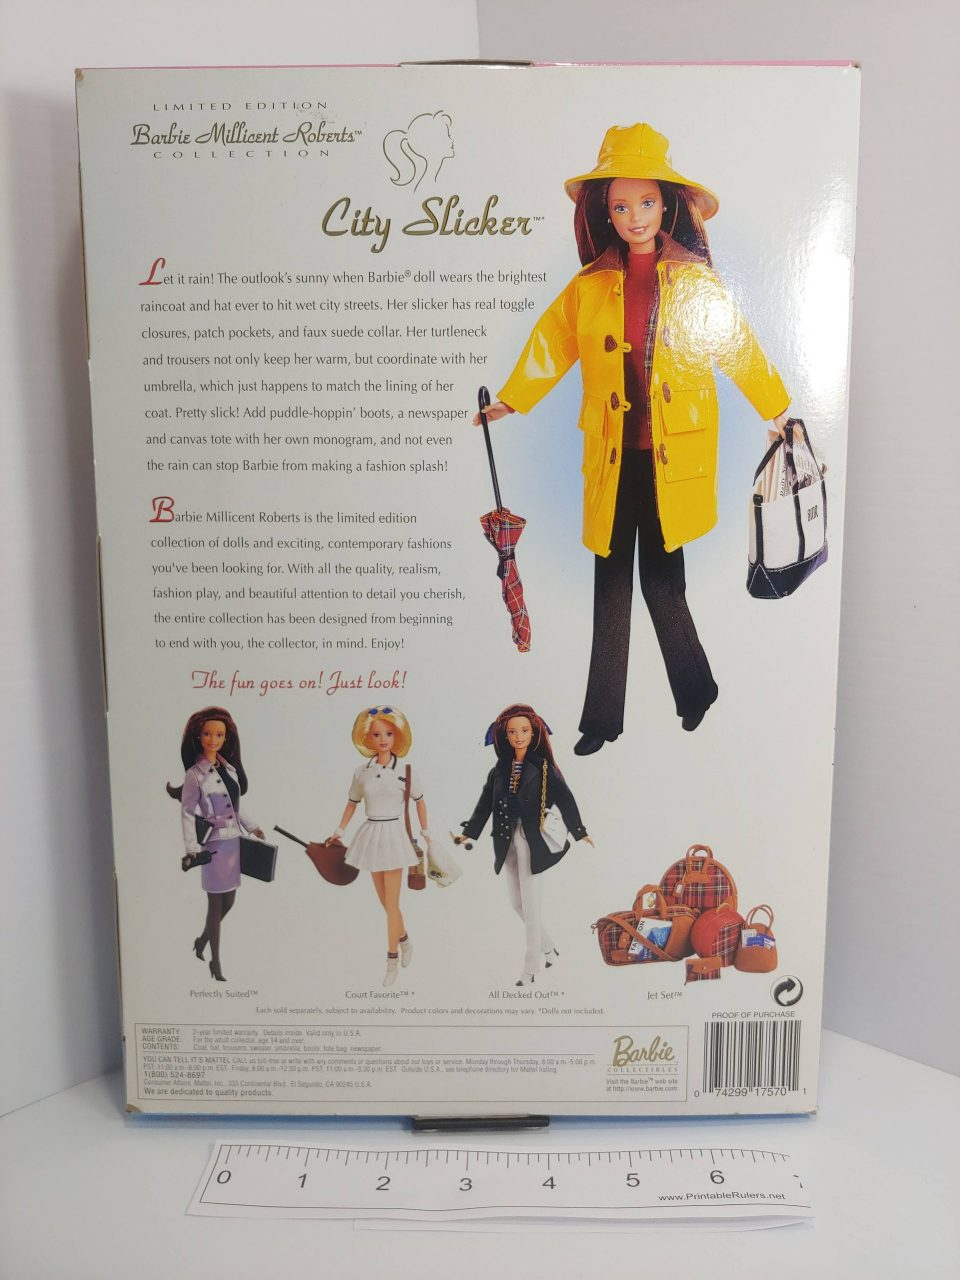 Limited Edition Barbie Millicent Roberts City Slicker Accessories, MPN 17570